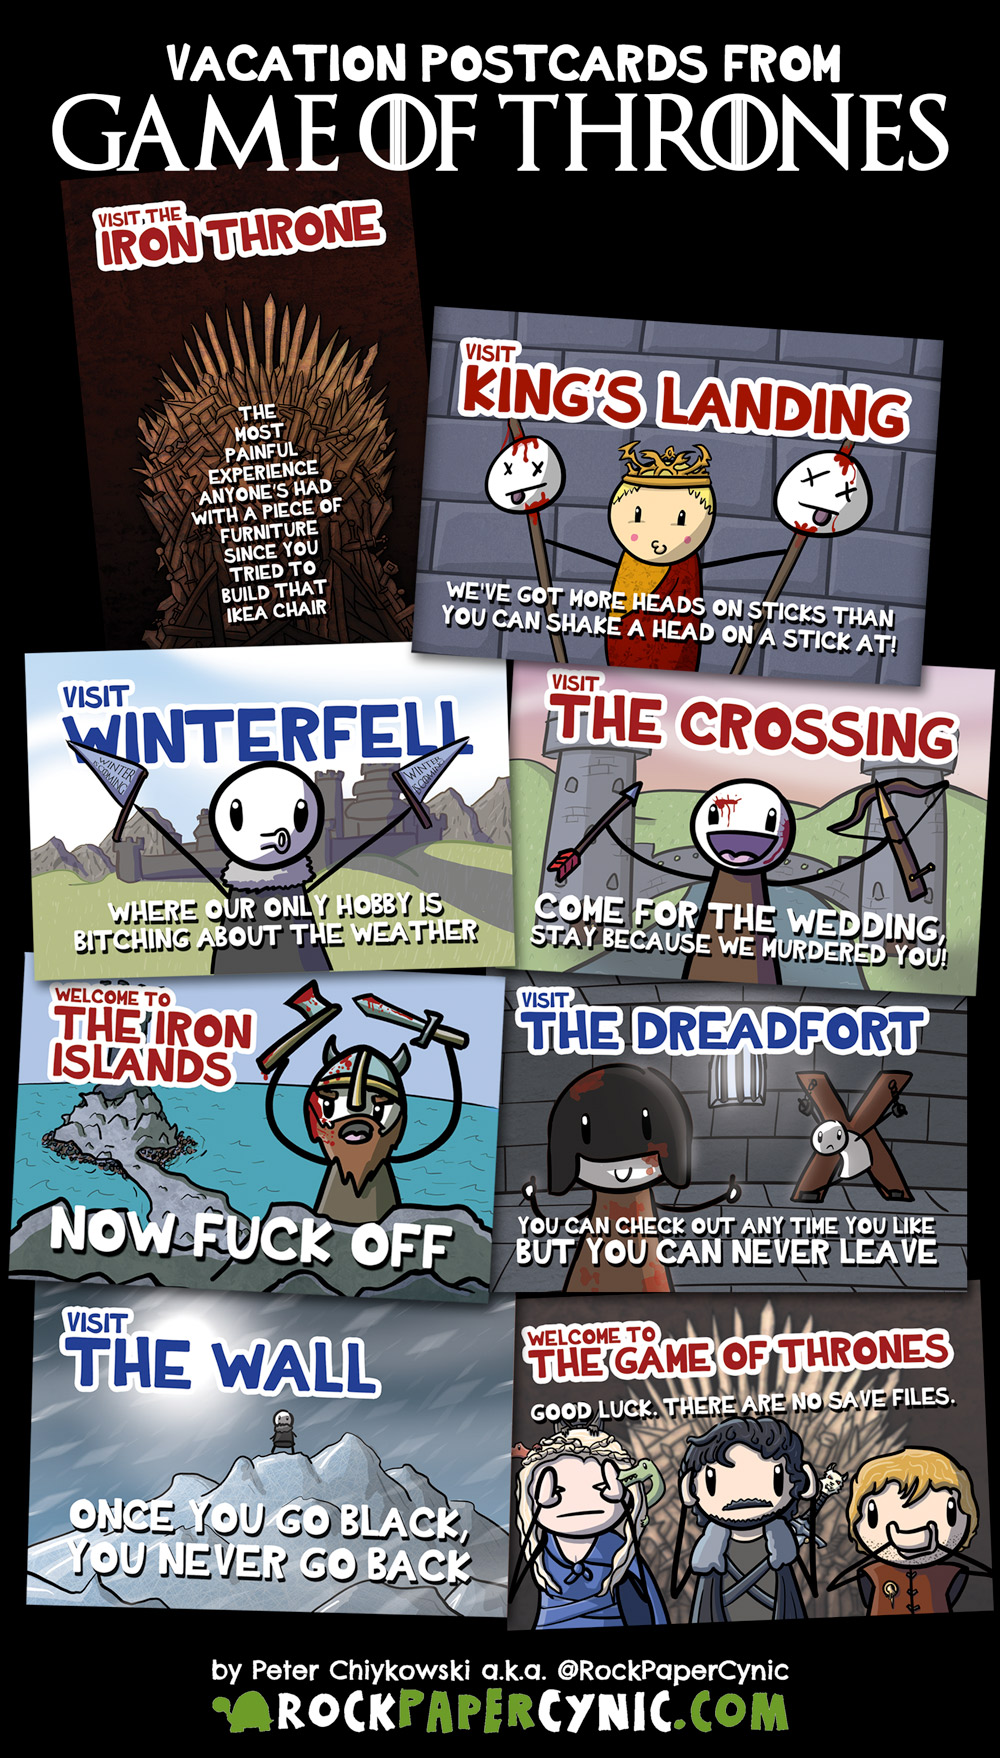 seven Game of Thrones postcards you can send to your friends on your next vacation in Westeros!